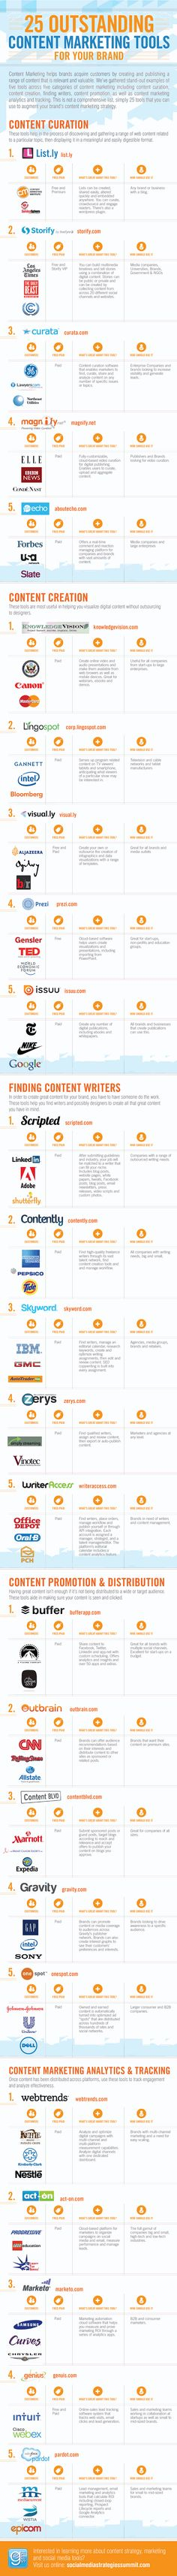 25 Excellent Content Marketing Tools for Your Brand